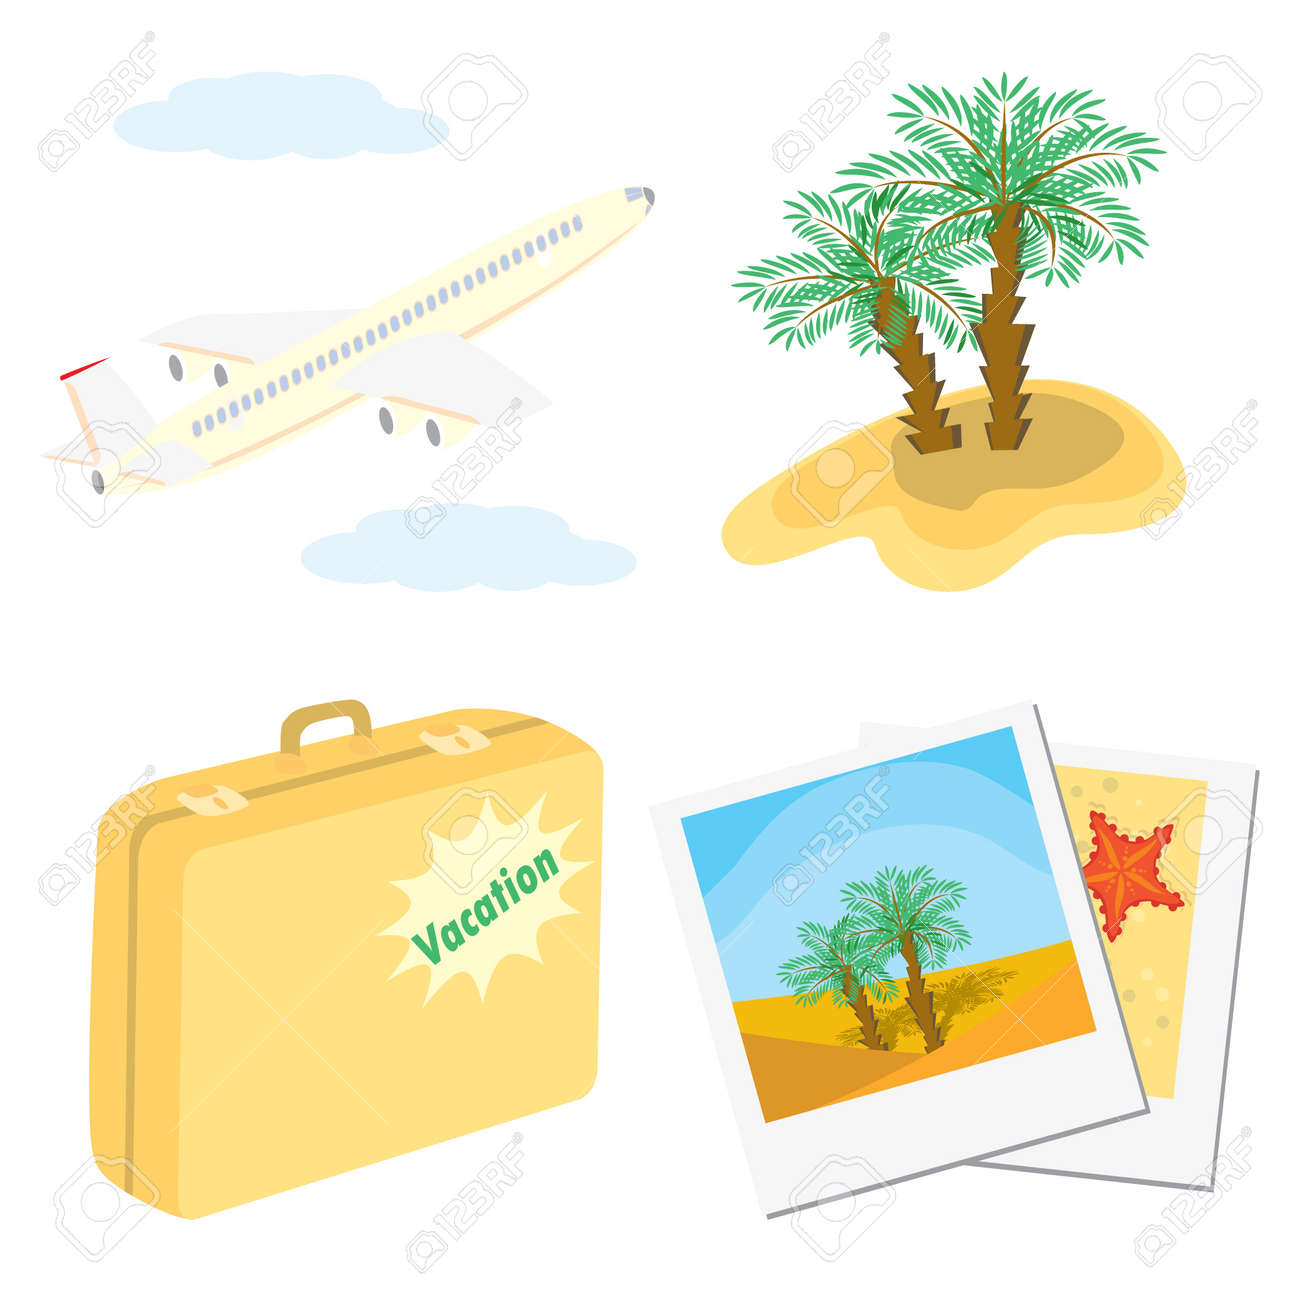 Set of color vacation icons (aircraft, palm trees, suitcase, photos). Vector illustrations. Stock Vector - 5466656